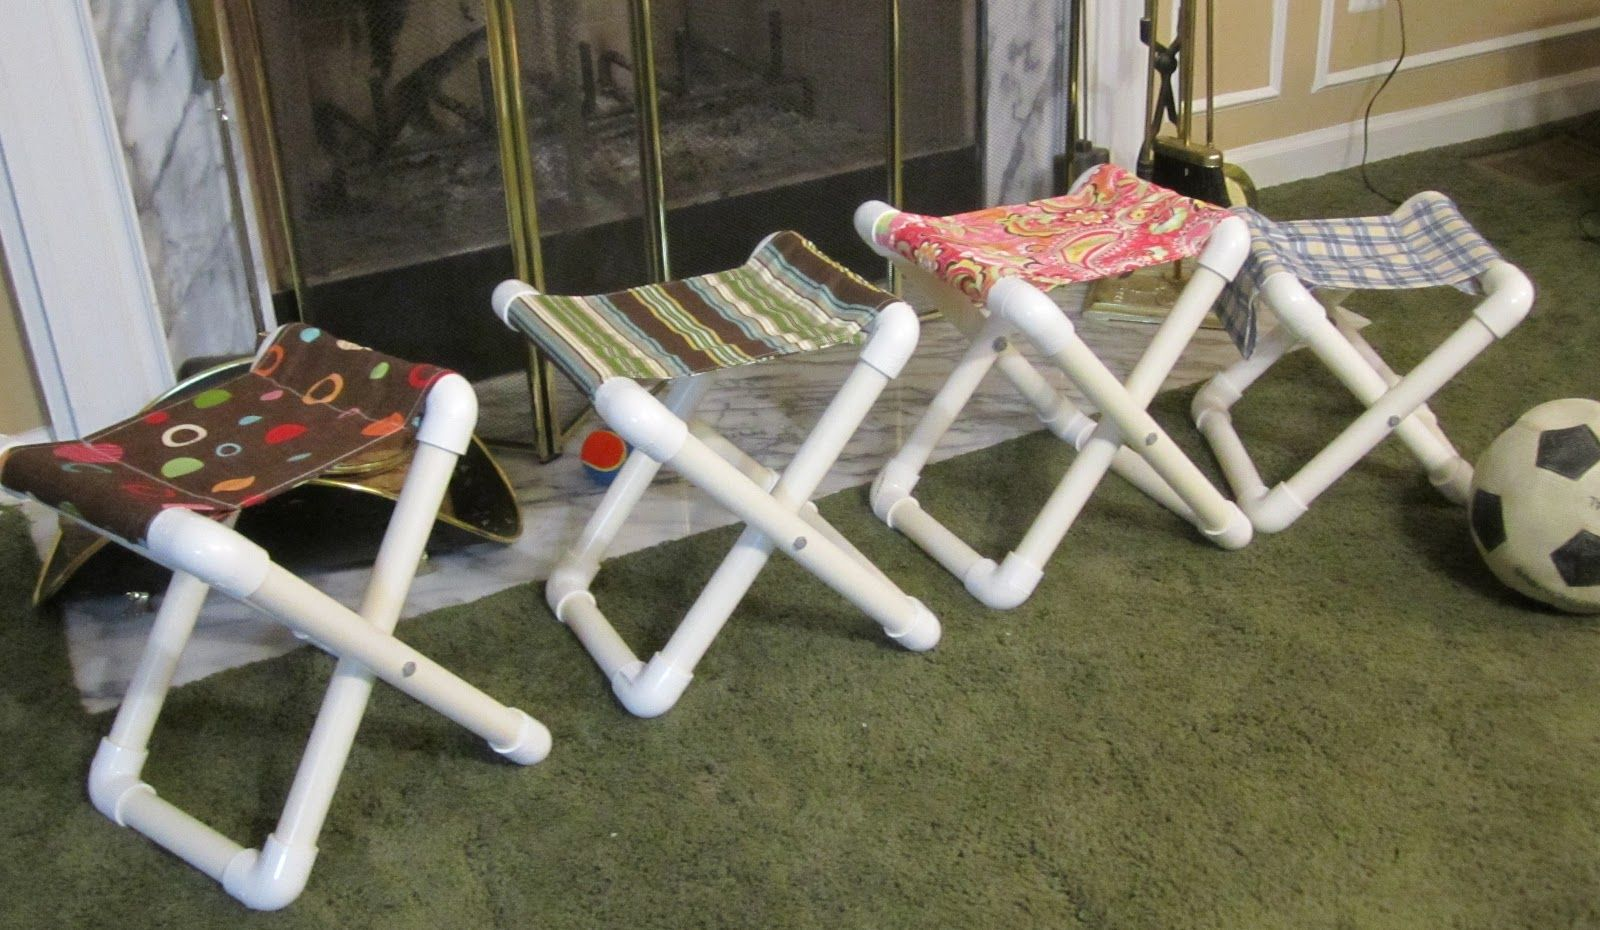 Summer Camp Chair Tutorial That You Can Make Yourself